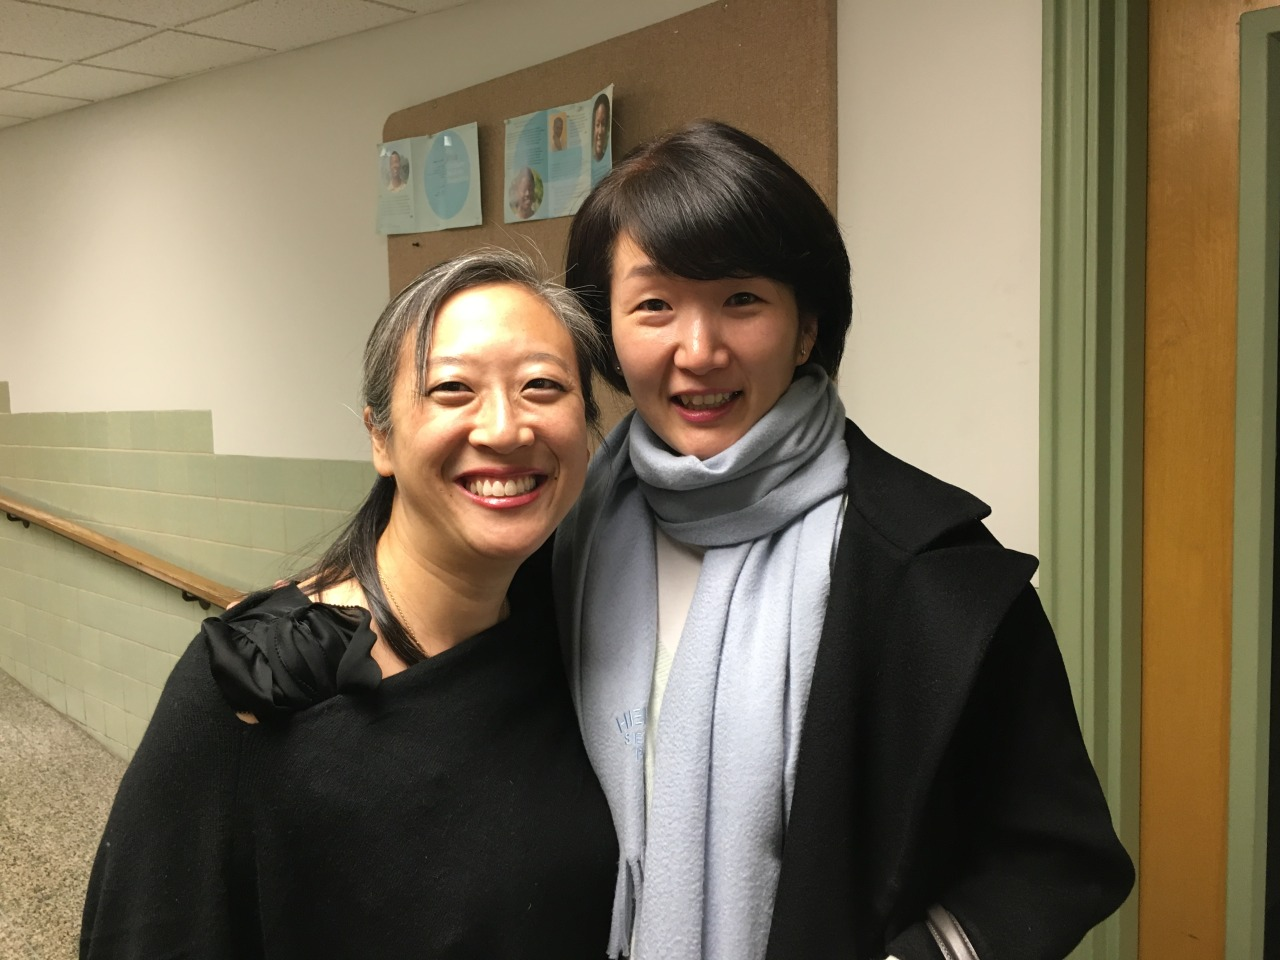 My friend, Sunyoung, came to our concert in Baltimore- I haven't seen her since we played Beethoven op. 59 #2 in 1997 at Tanglewood!